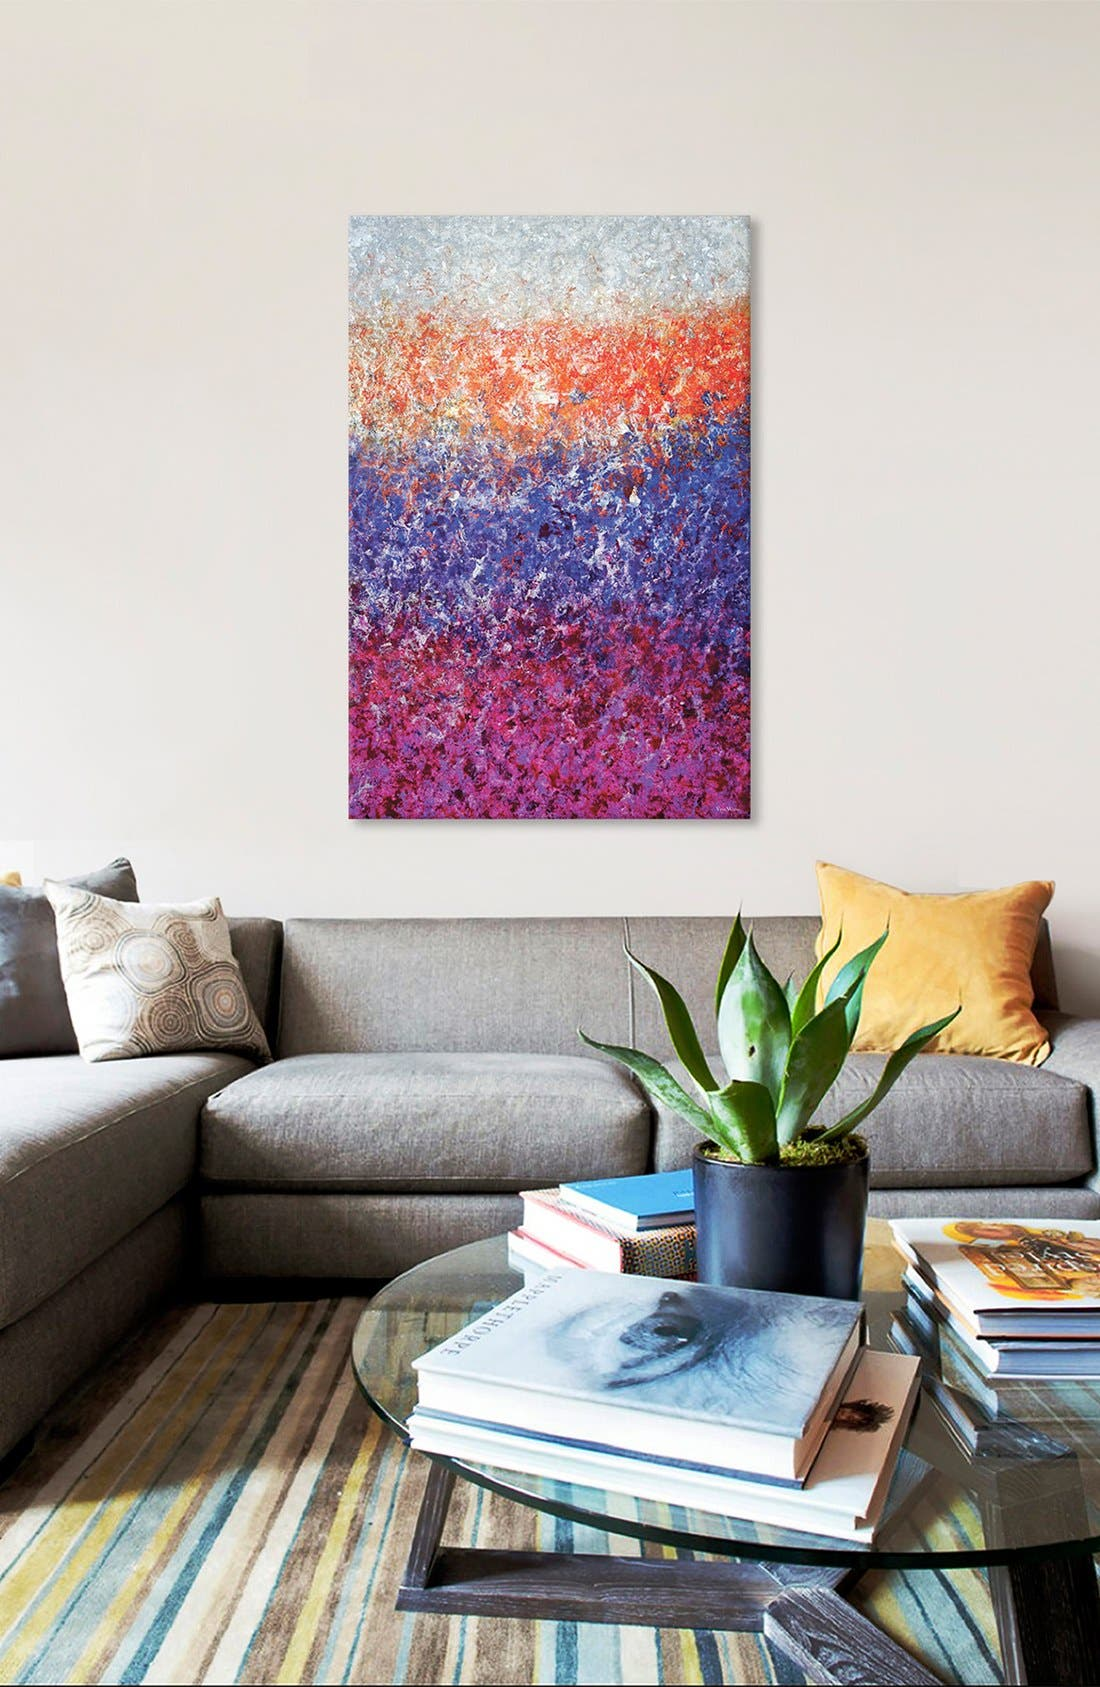 'Dying Light' Giclée Print Canvas Art,                             Alternate thumbnail 2, color,                             500